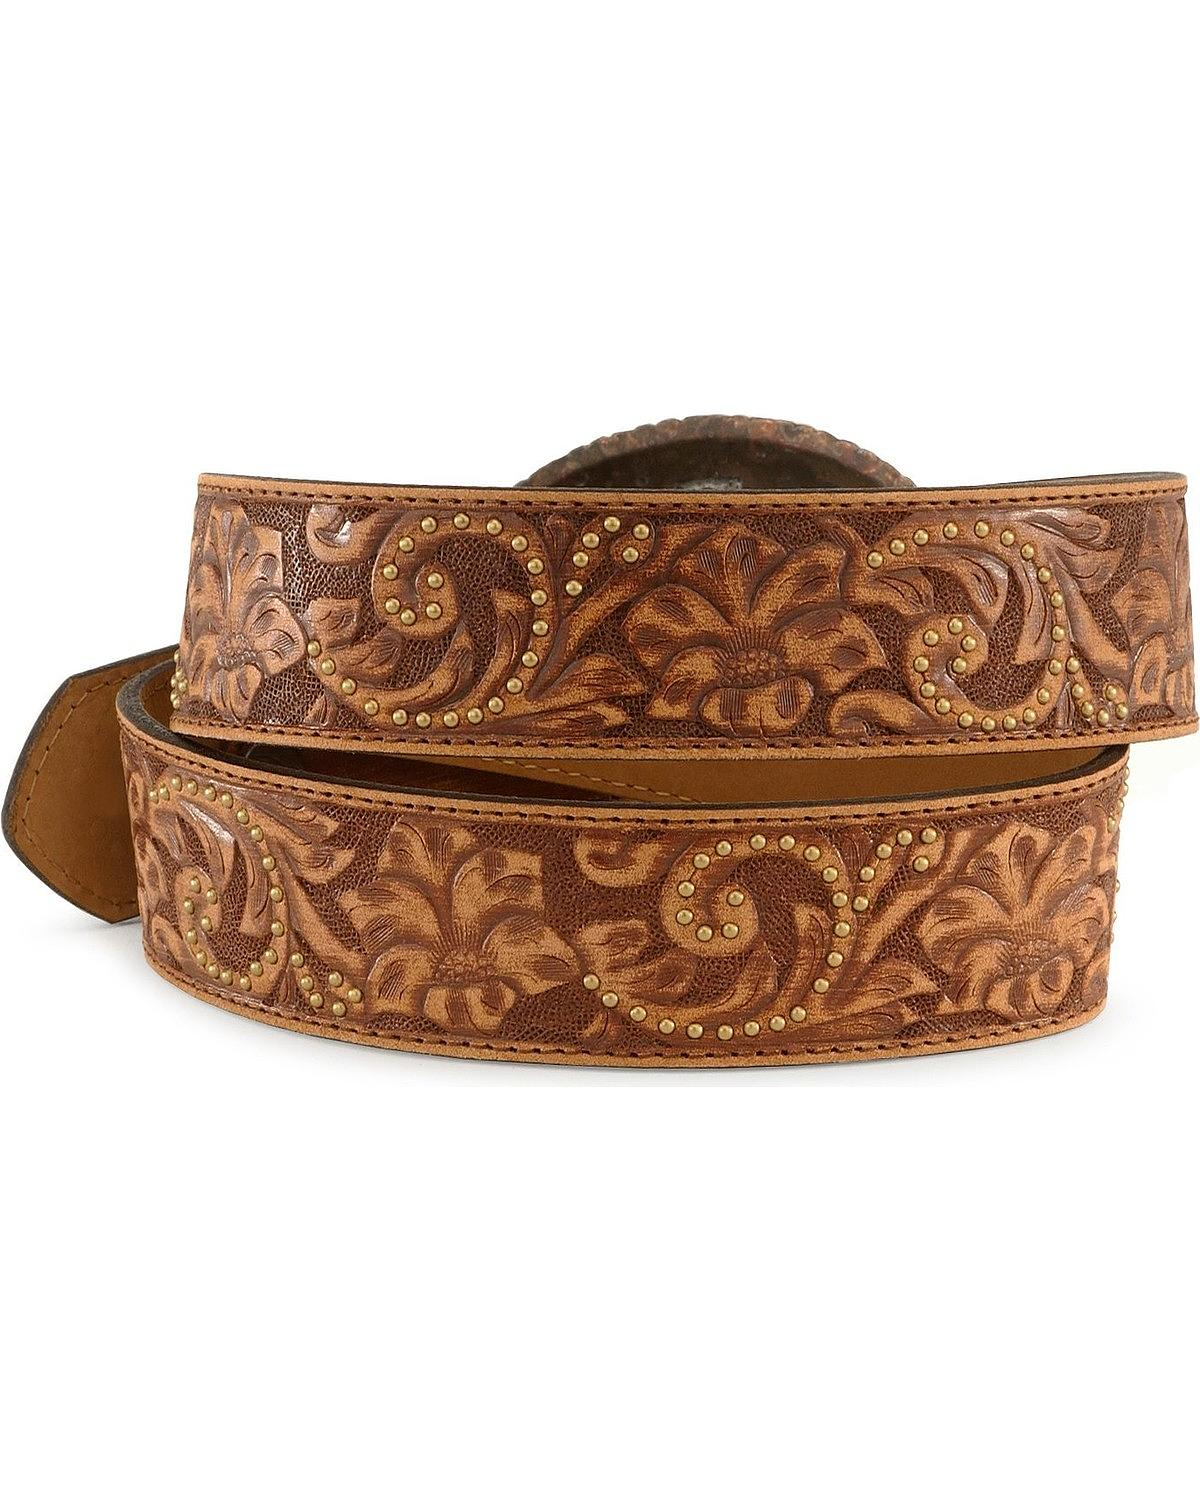 justin s cross buckle tooled leather belt c20555